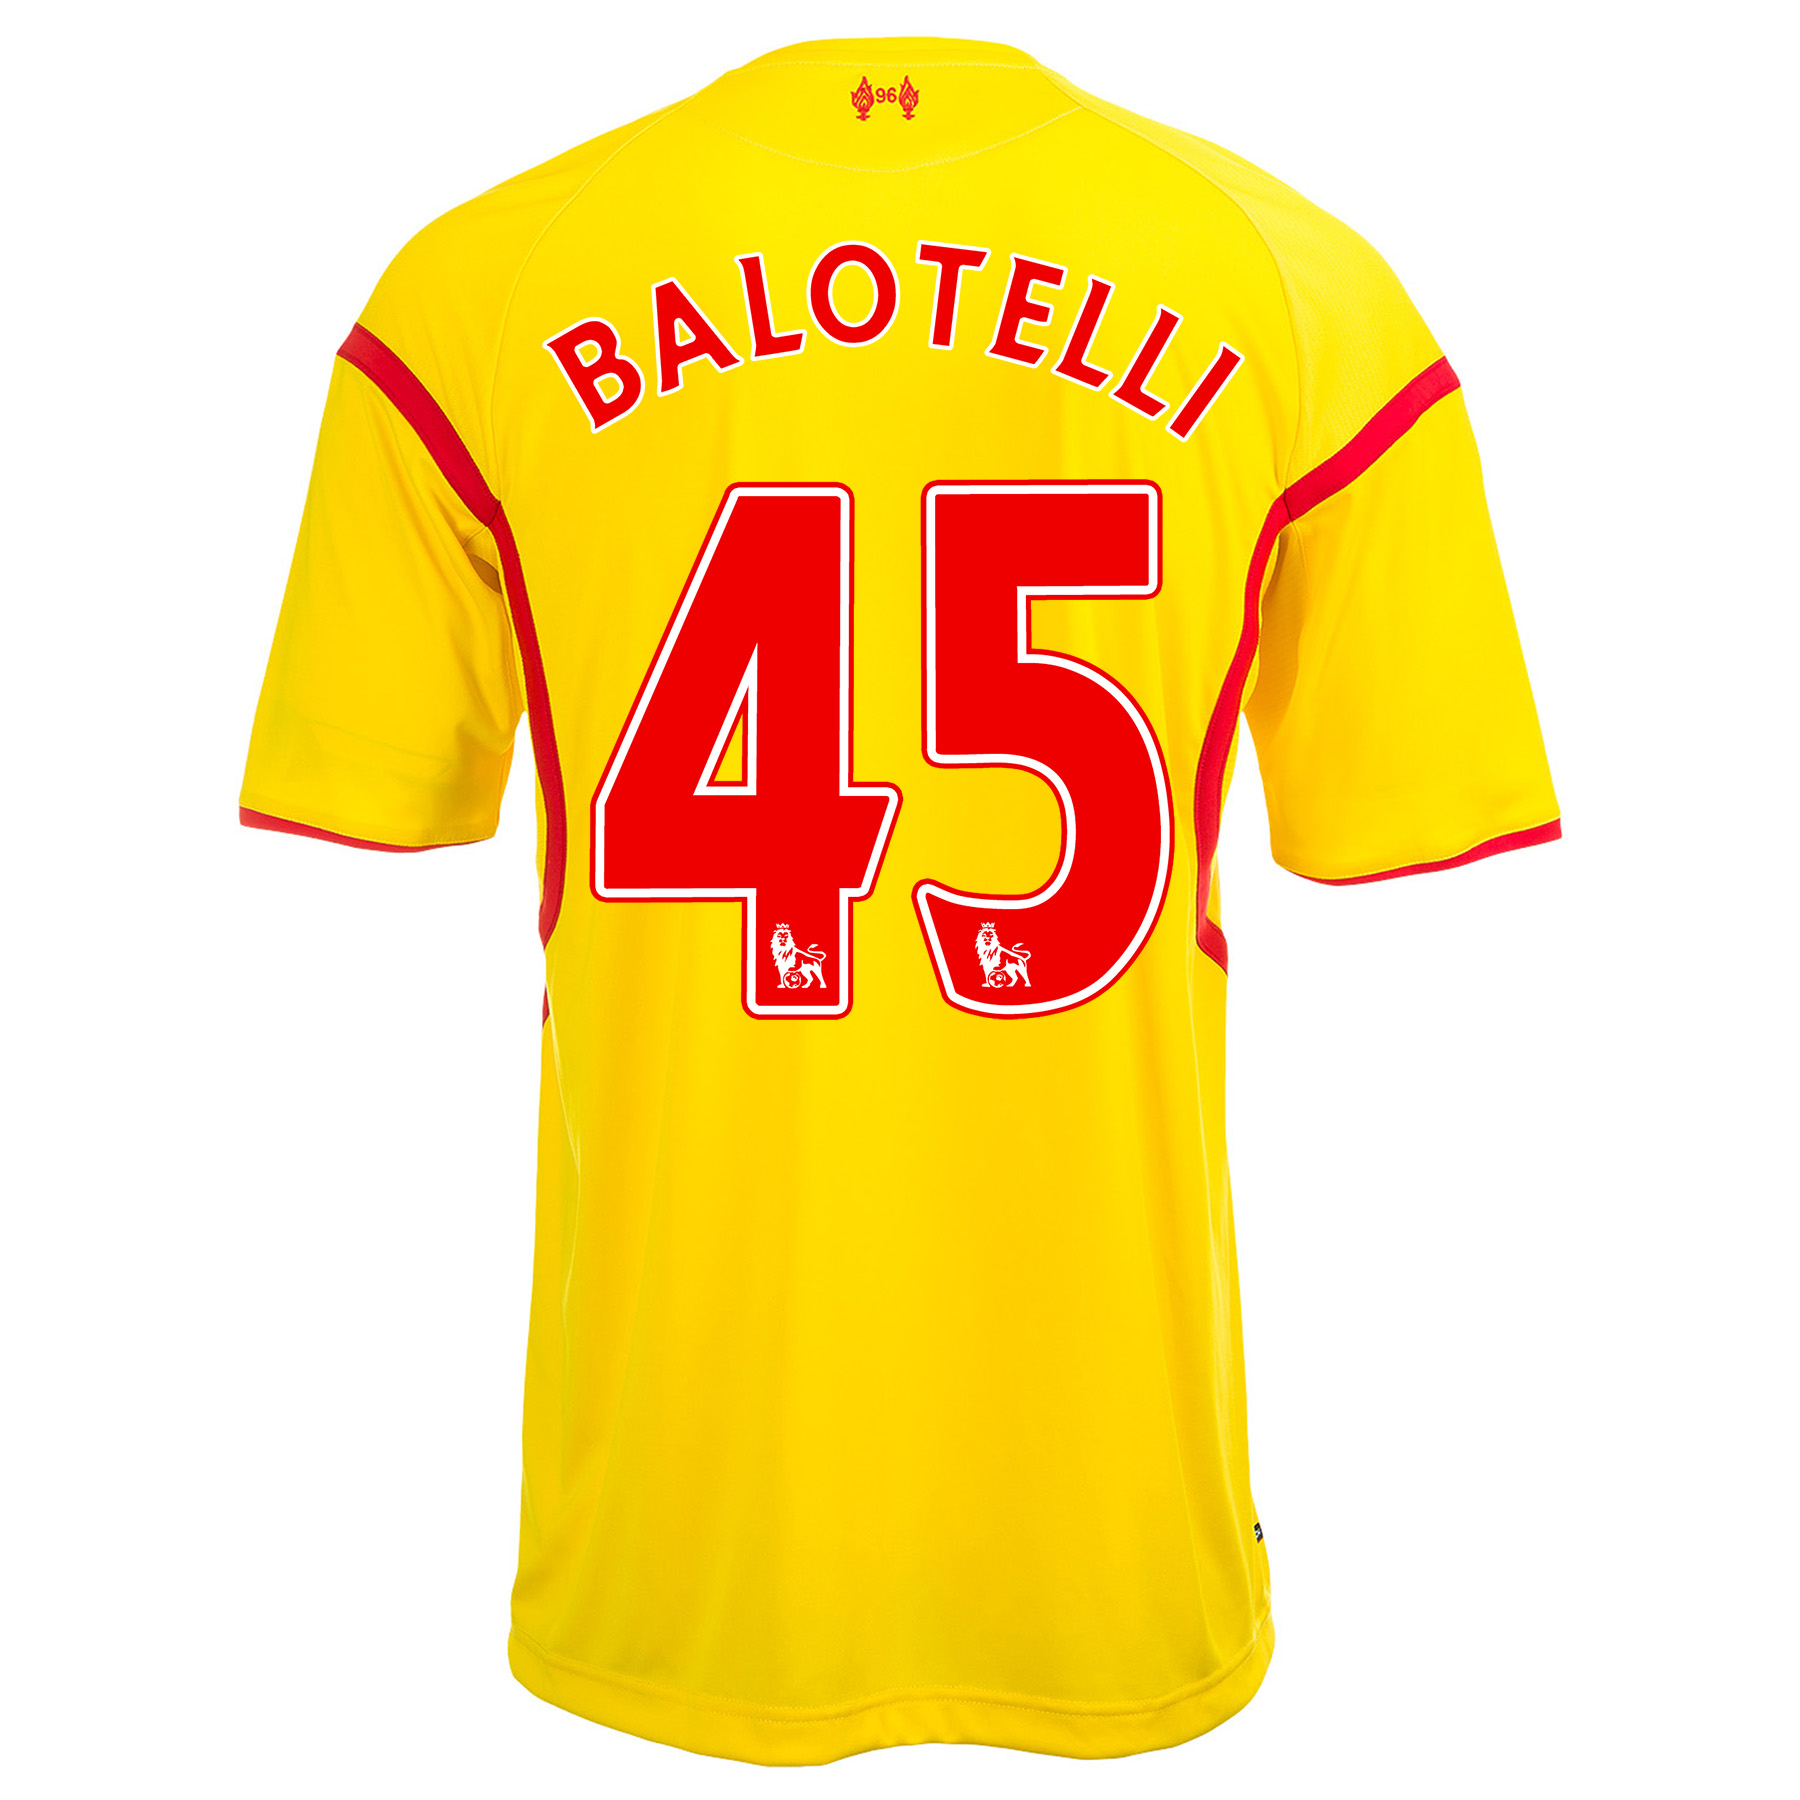 Liverpool Away Shirt 2014/15 with Balotelli 45 printing